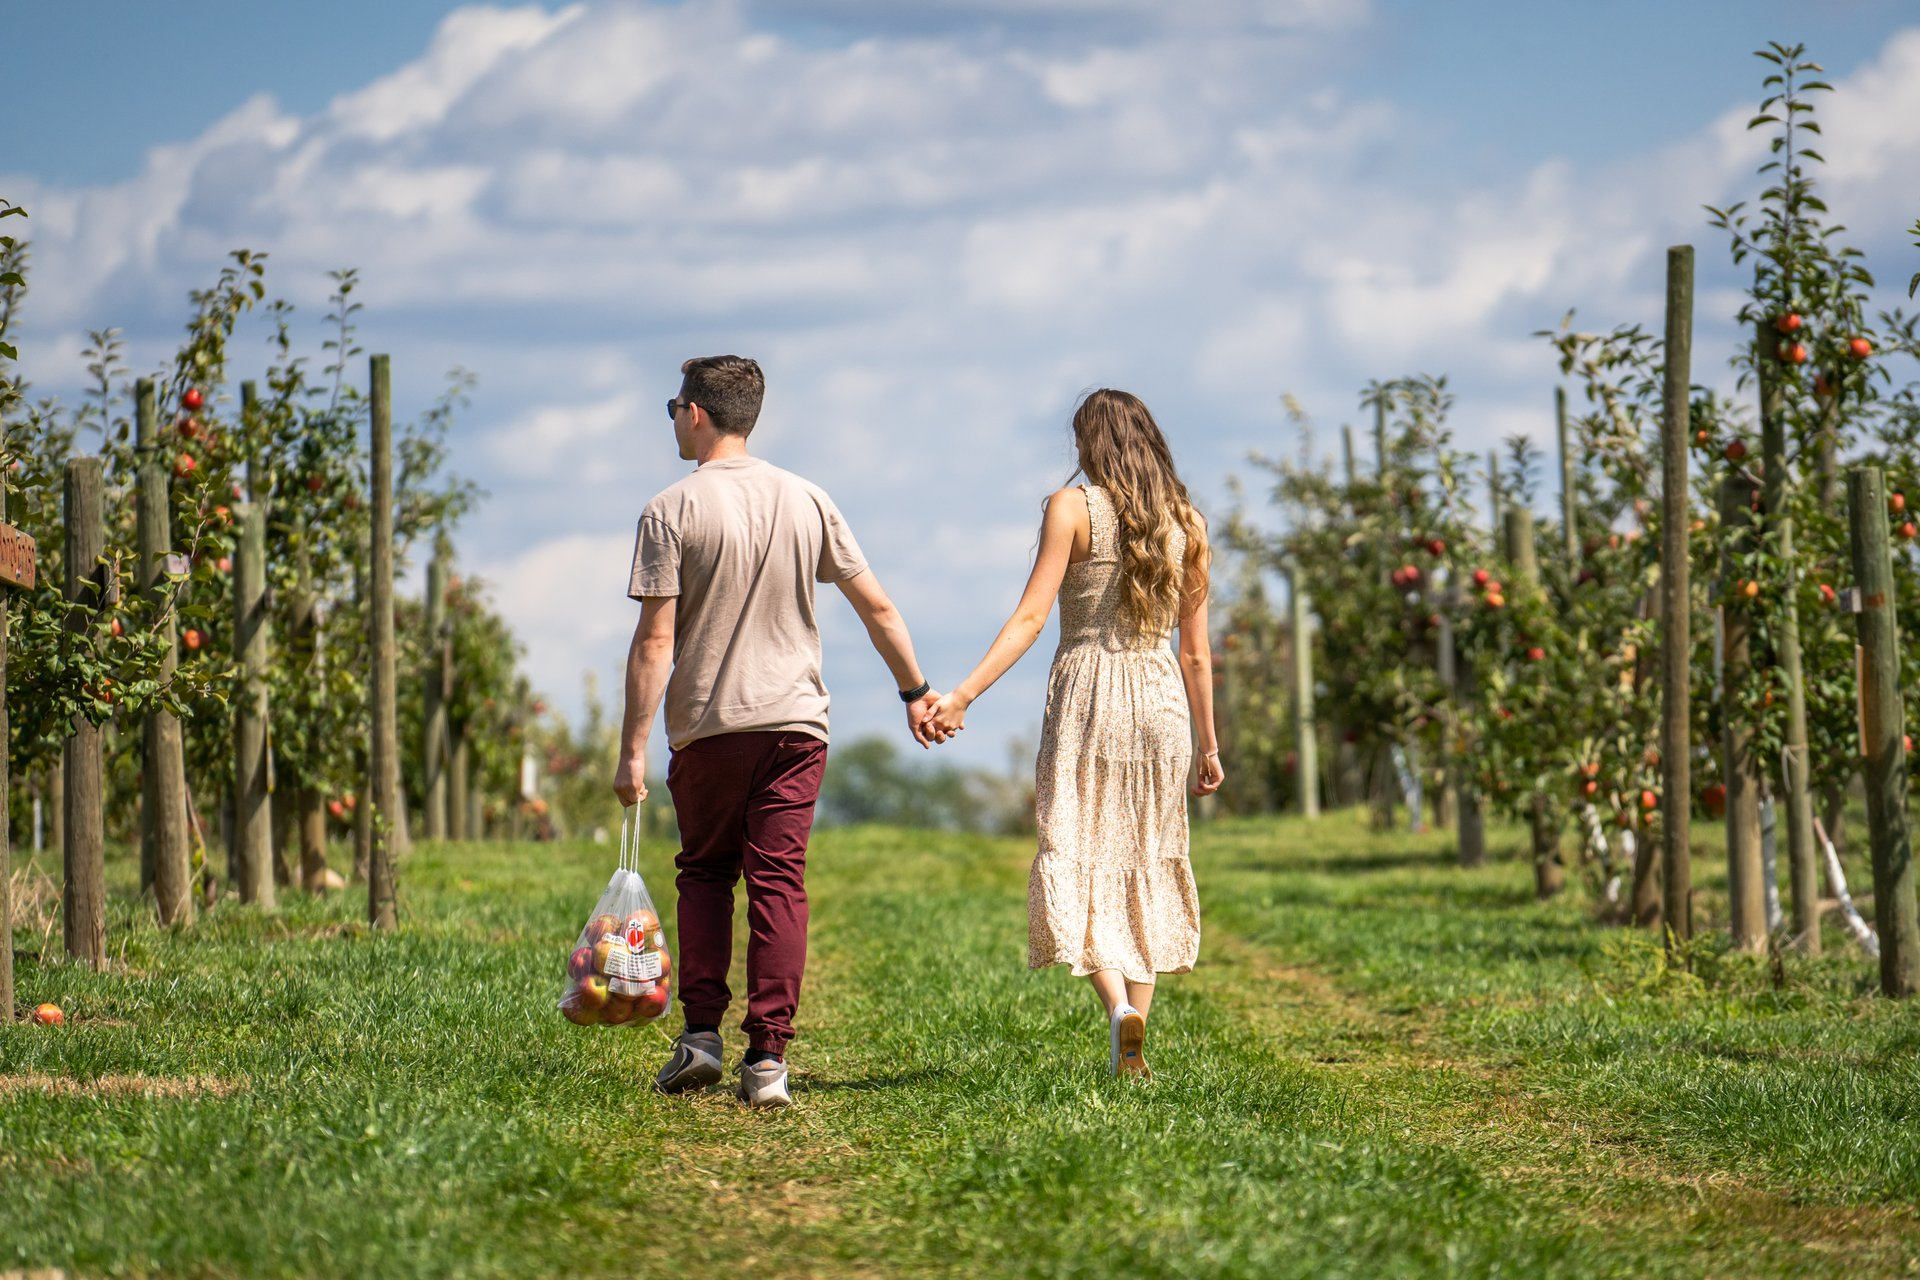 a male and a female holding hands and walking through an apple orchard after picking some apples in the fall on a sunny day